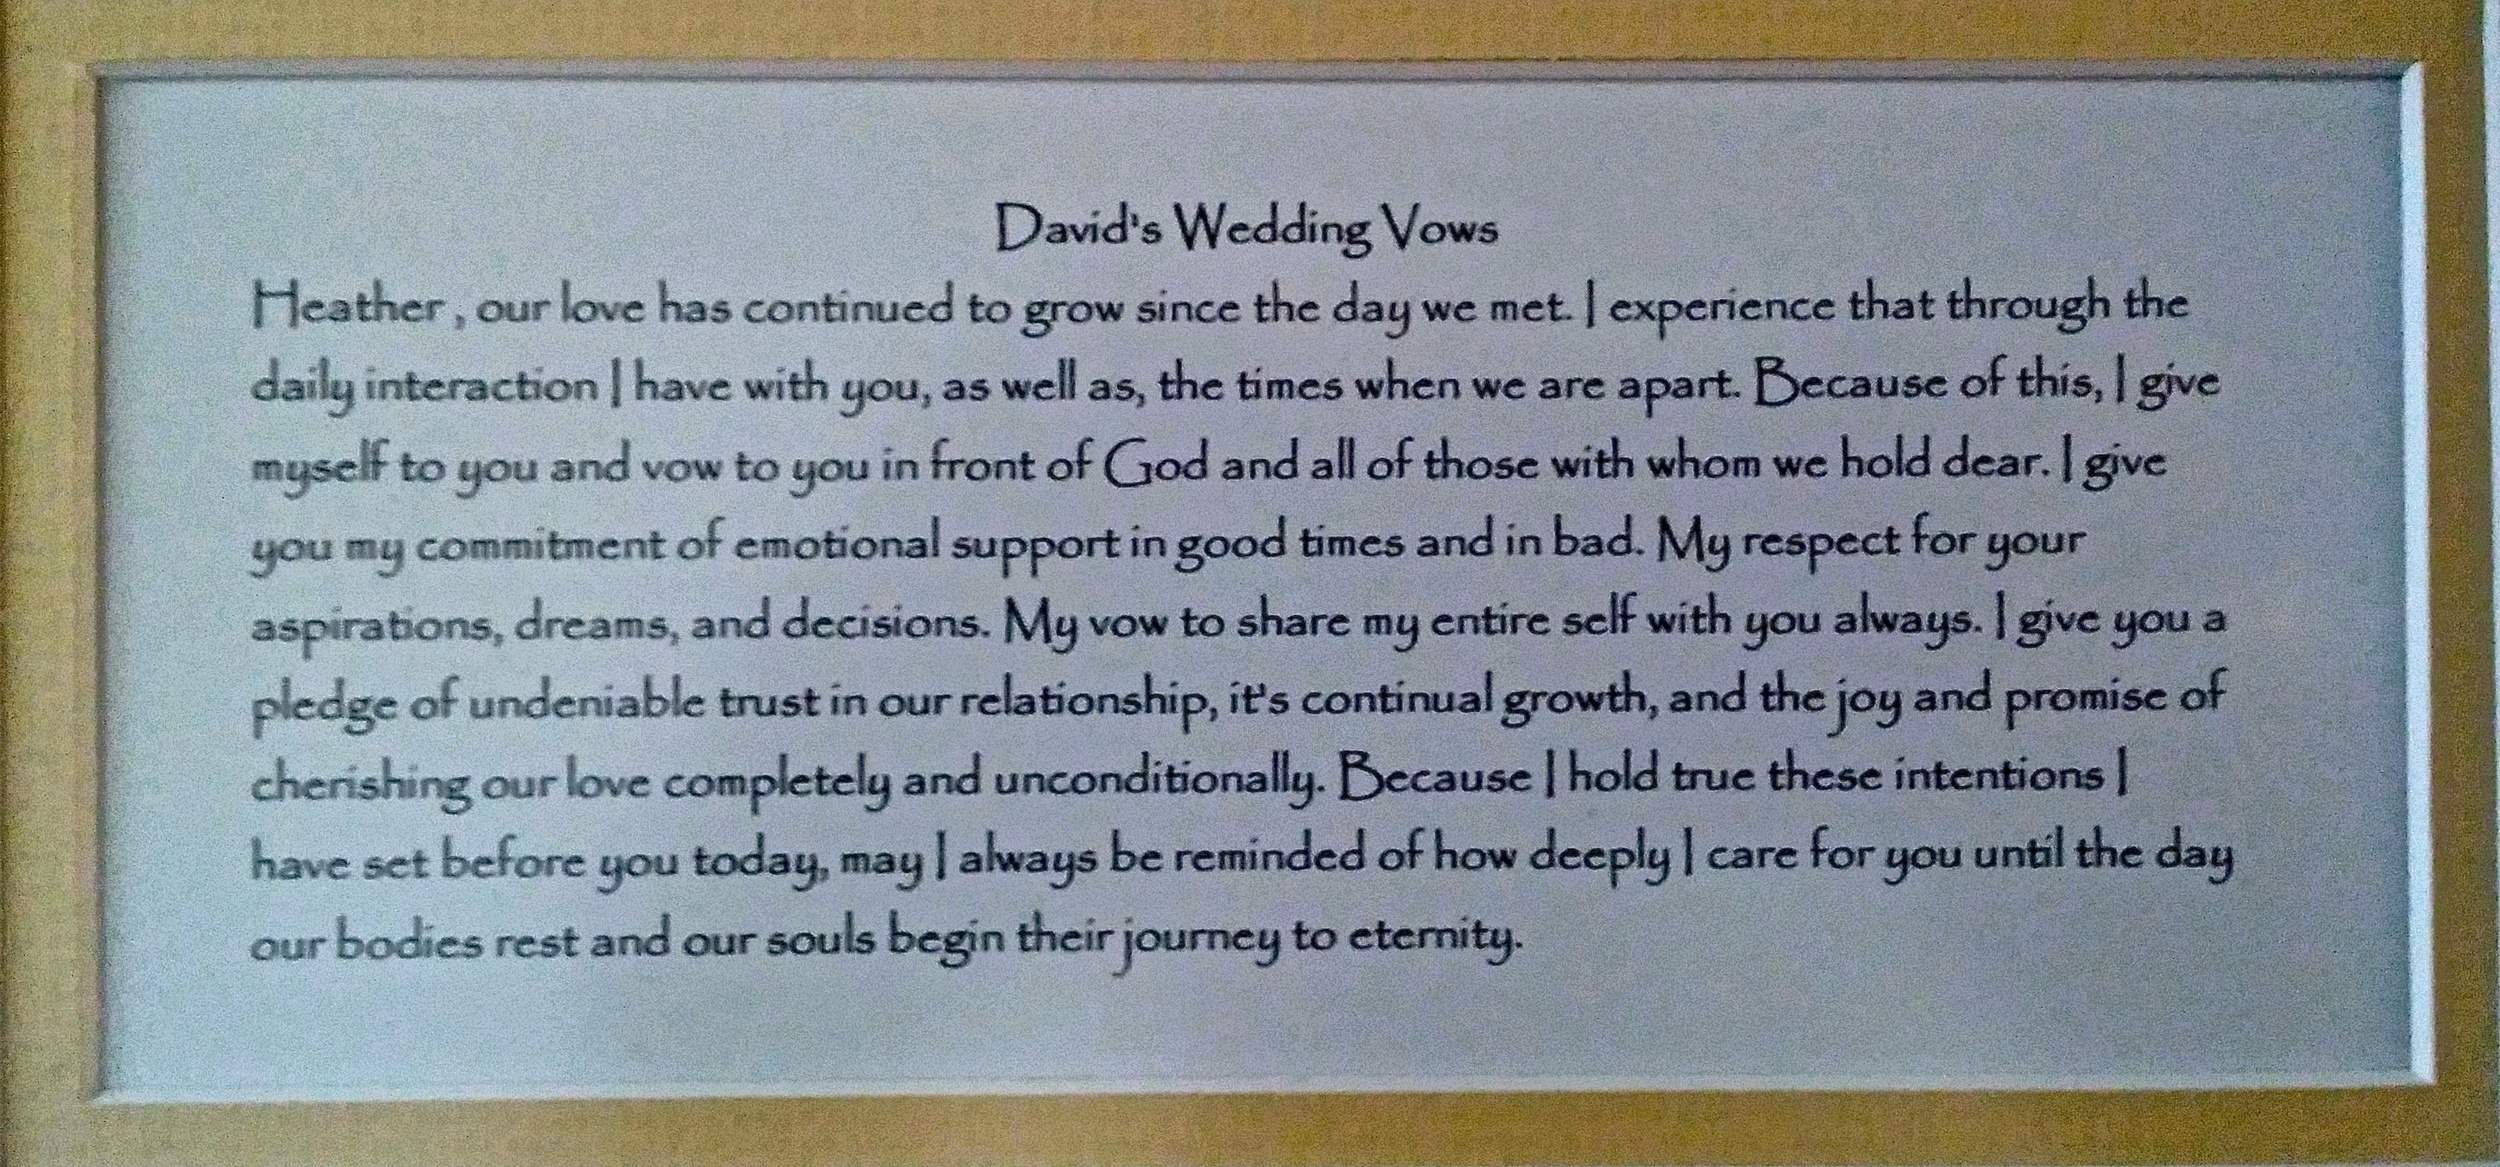 Writing Wedding Vows.Writing Your Wedding Vows Spirited Table